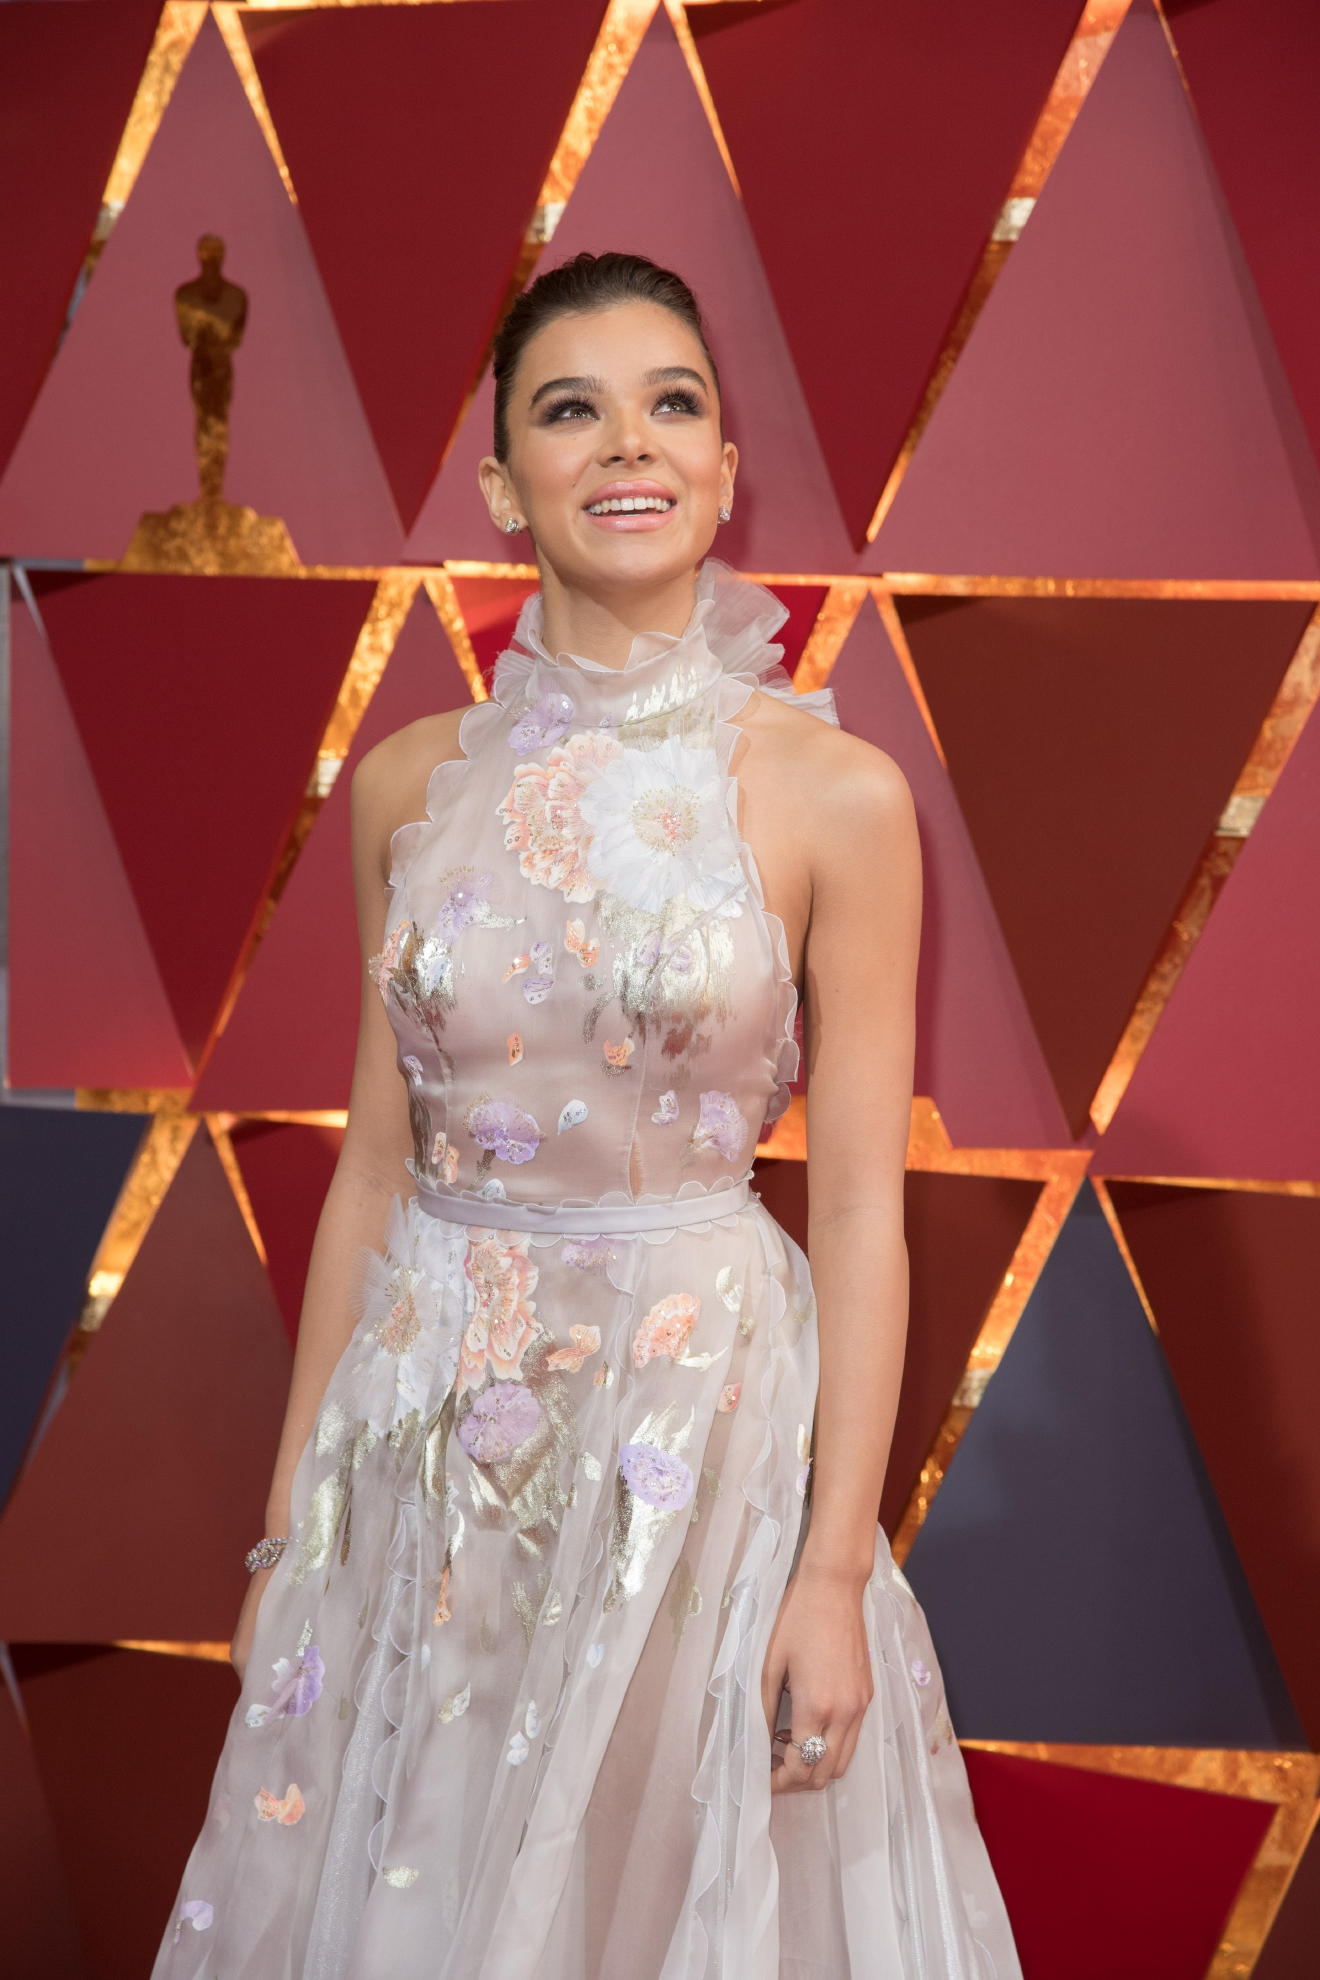 #41: Hailee Steinfeld. Make up your mind, Hailee! Ruffles, flowers, belts, collar....but your smile is gorgeous we'll give you that. (Image: AMPAS)